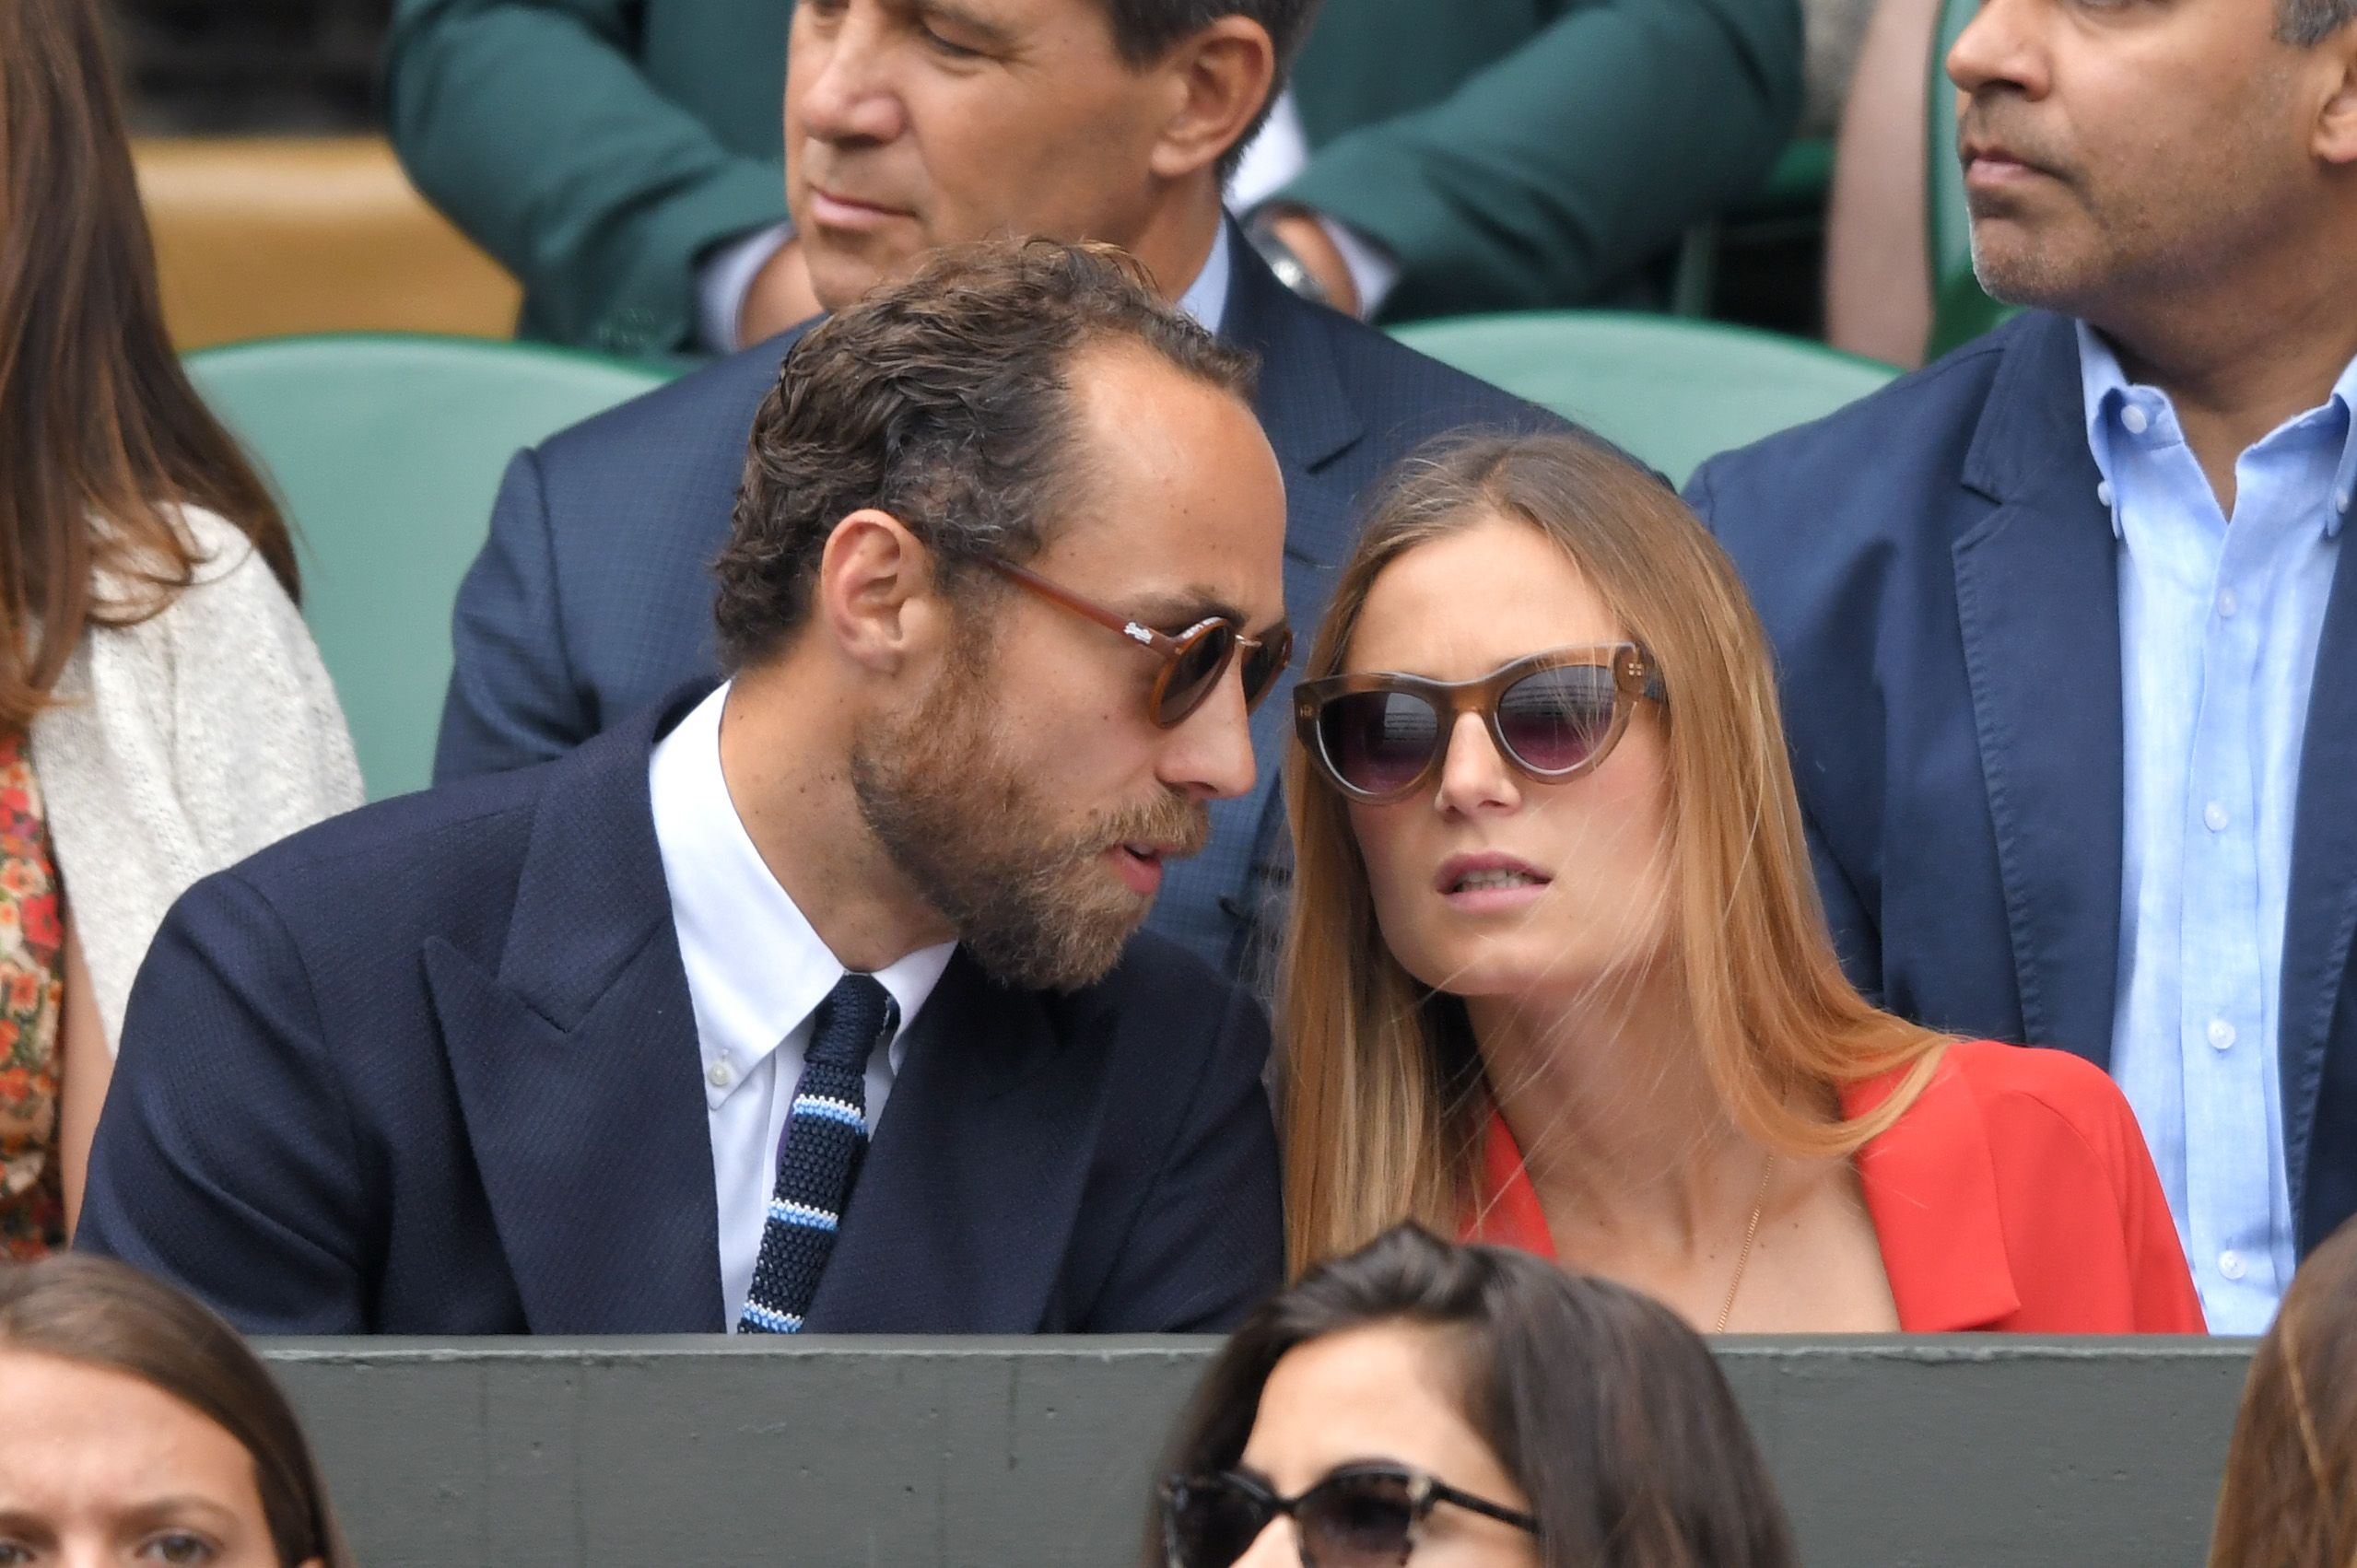 James Middleton and Alizee Thevenet attend the Men's Finals Day of the Wimbledon Tennis Championships at All England Lawn Tennis and Croquet Club on July 14, 2019 in London, England. | Source: Getty Images